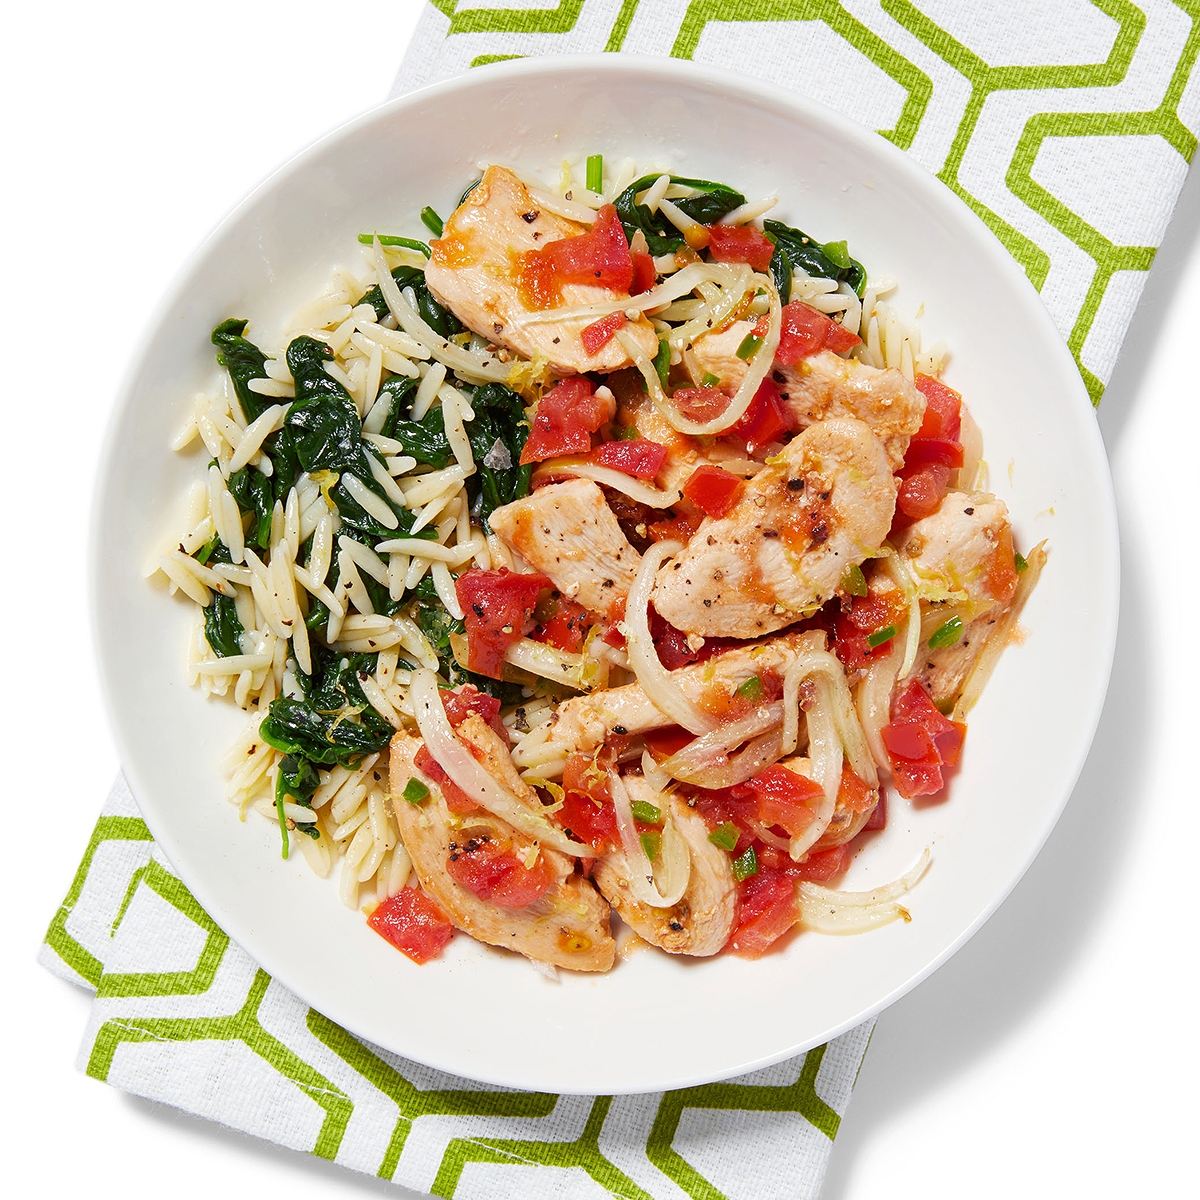 Spicy Chicken with Spinach Orzo